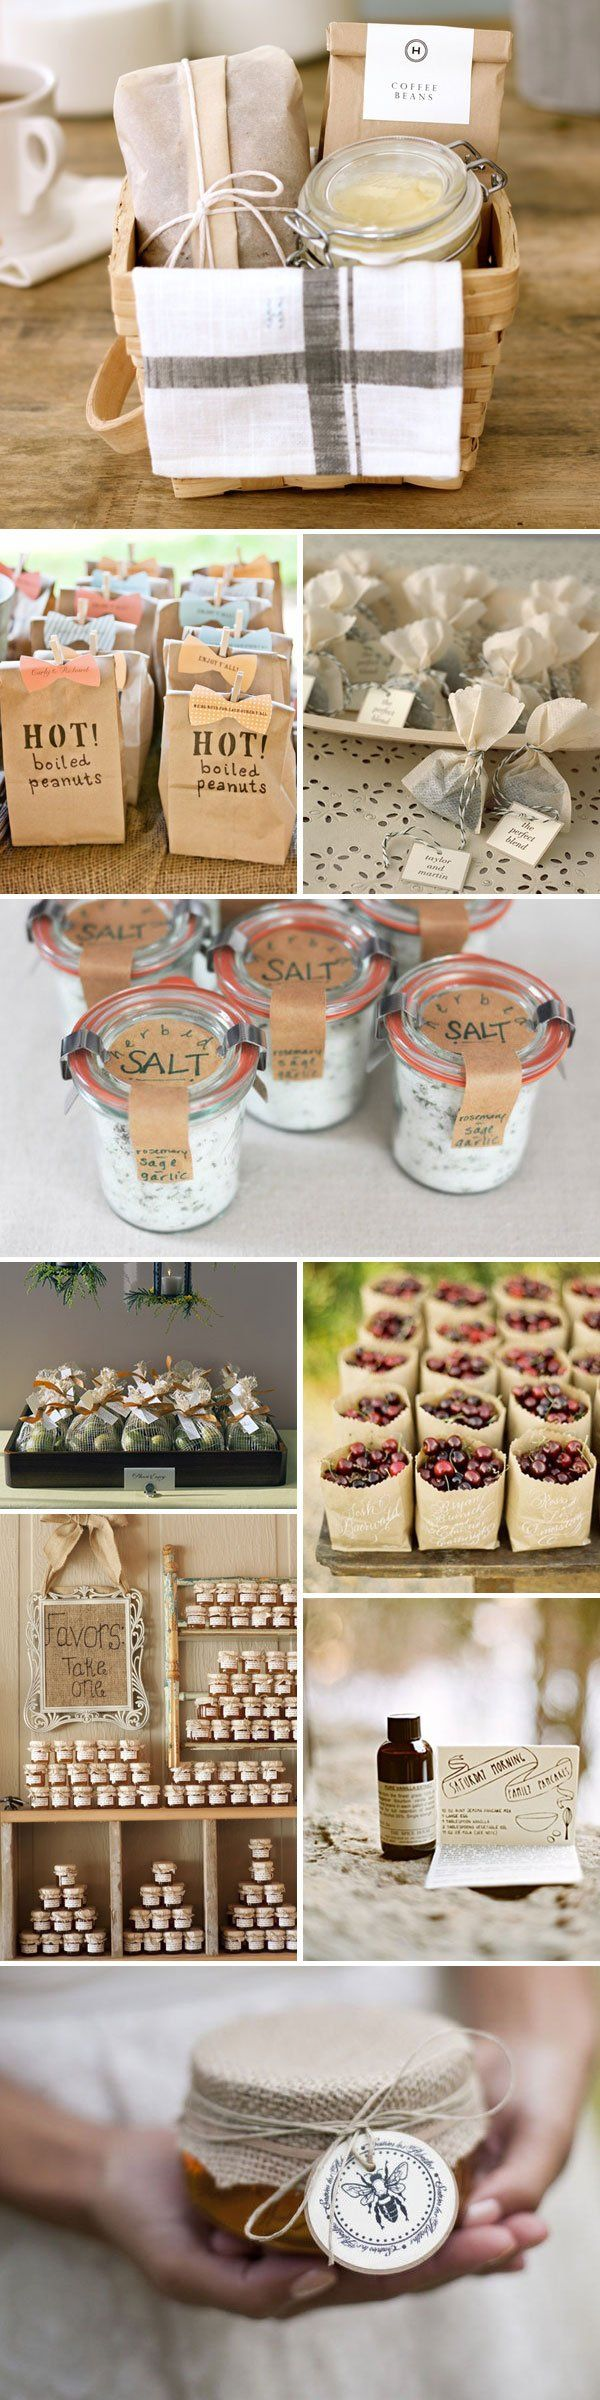 wedding favours - diy